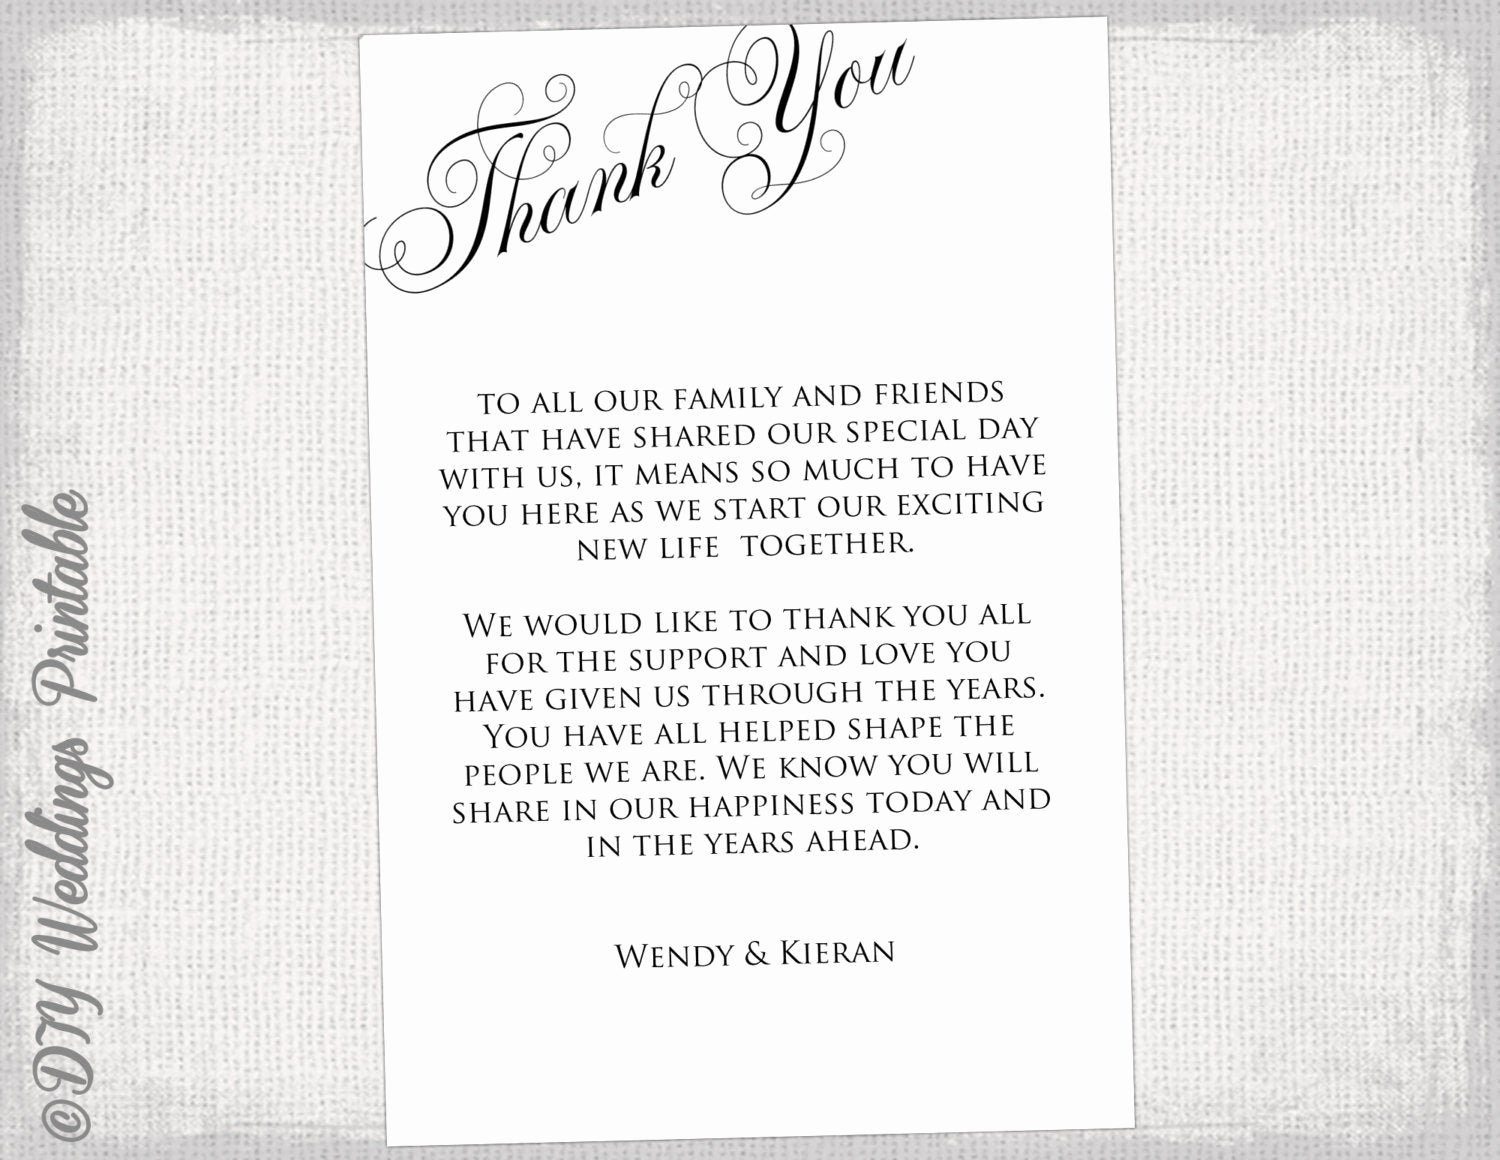 Wedding Thank You Card Template Best Of Printable Thank You Card Template Black & White Wedding Thank